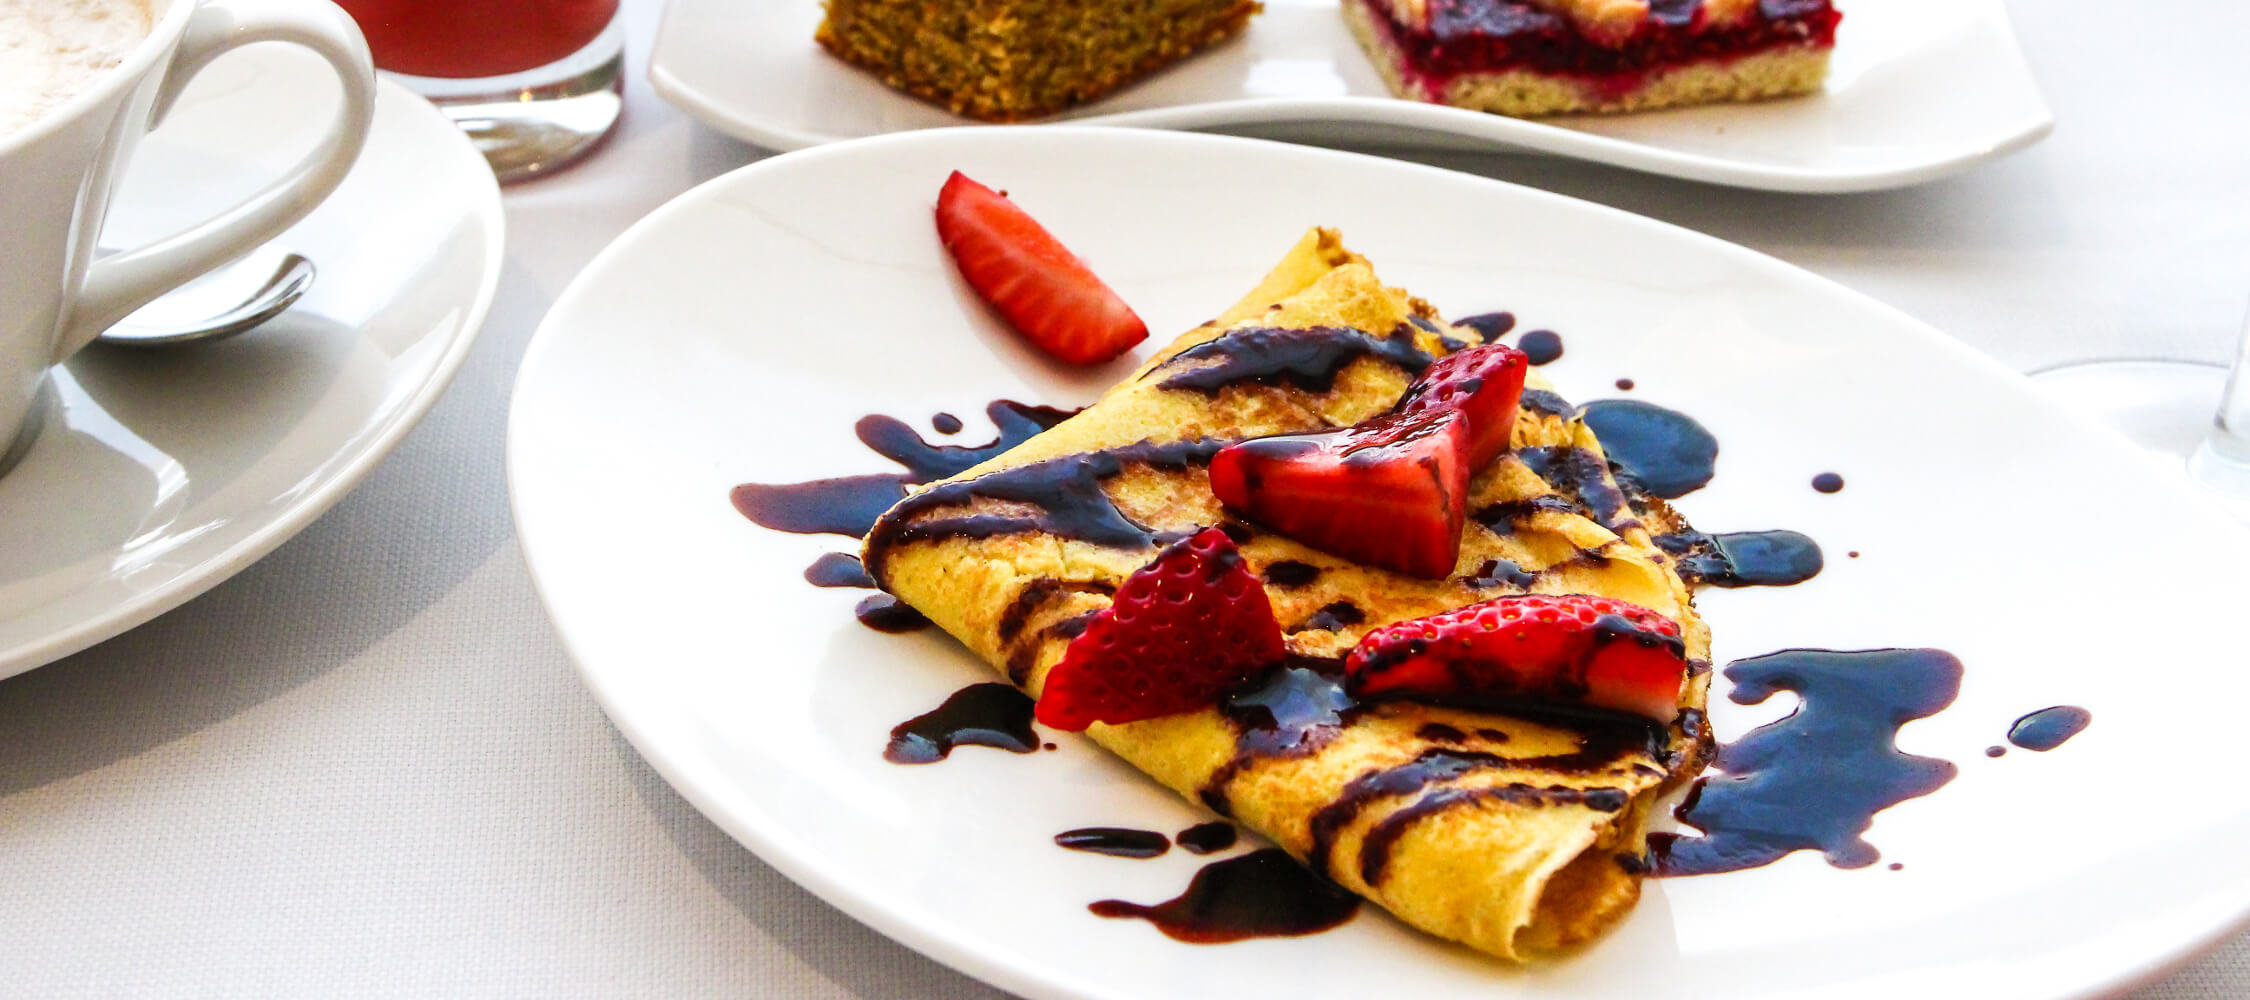 City_Hotel_Merano_Restaurant_Breakfast_Buffet_Fruehstueck_Essen_Crepes_Sweet_Anguane_5622_2250x1000